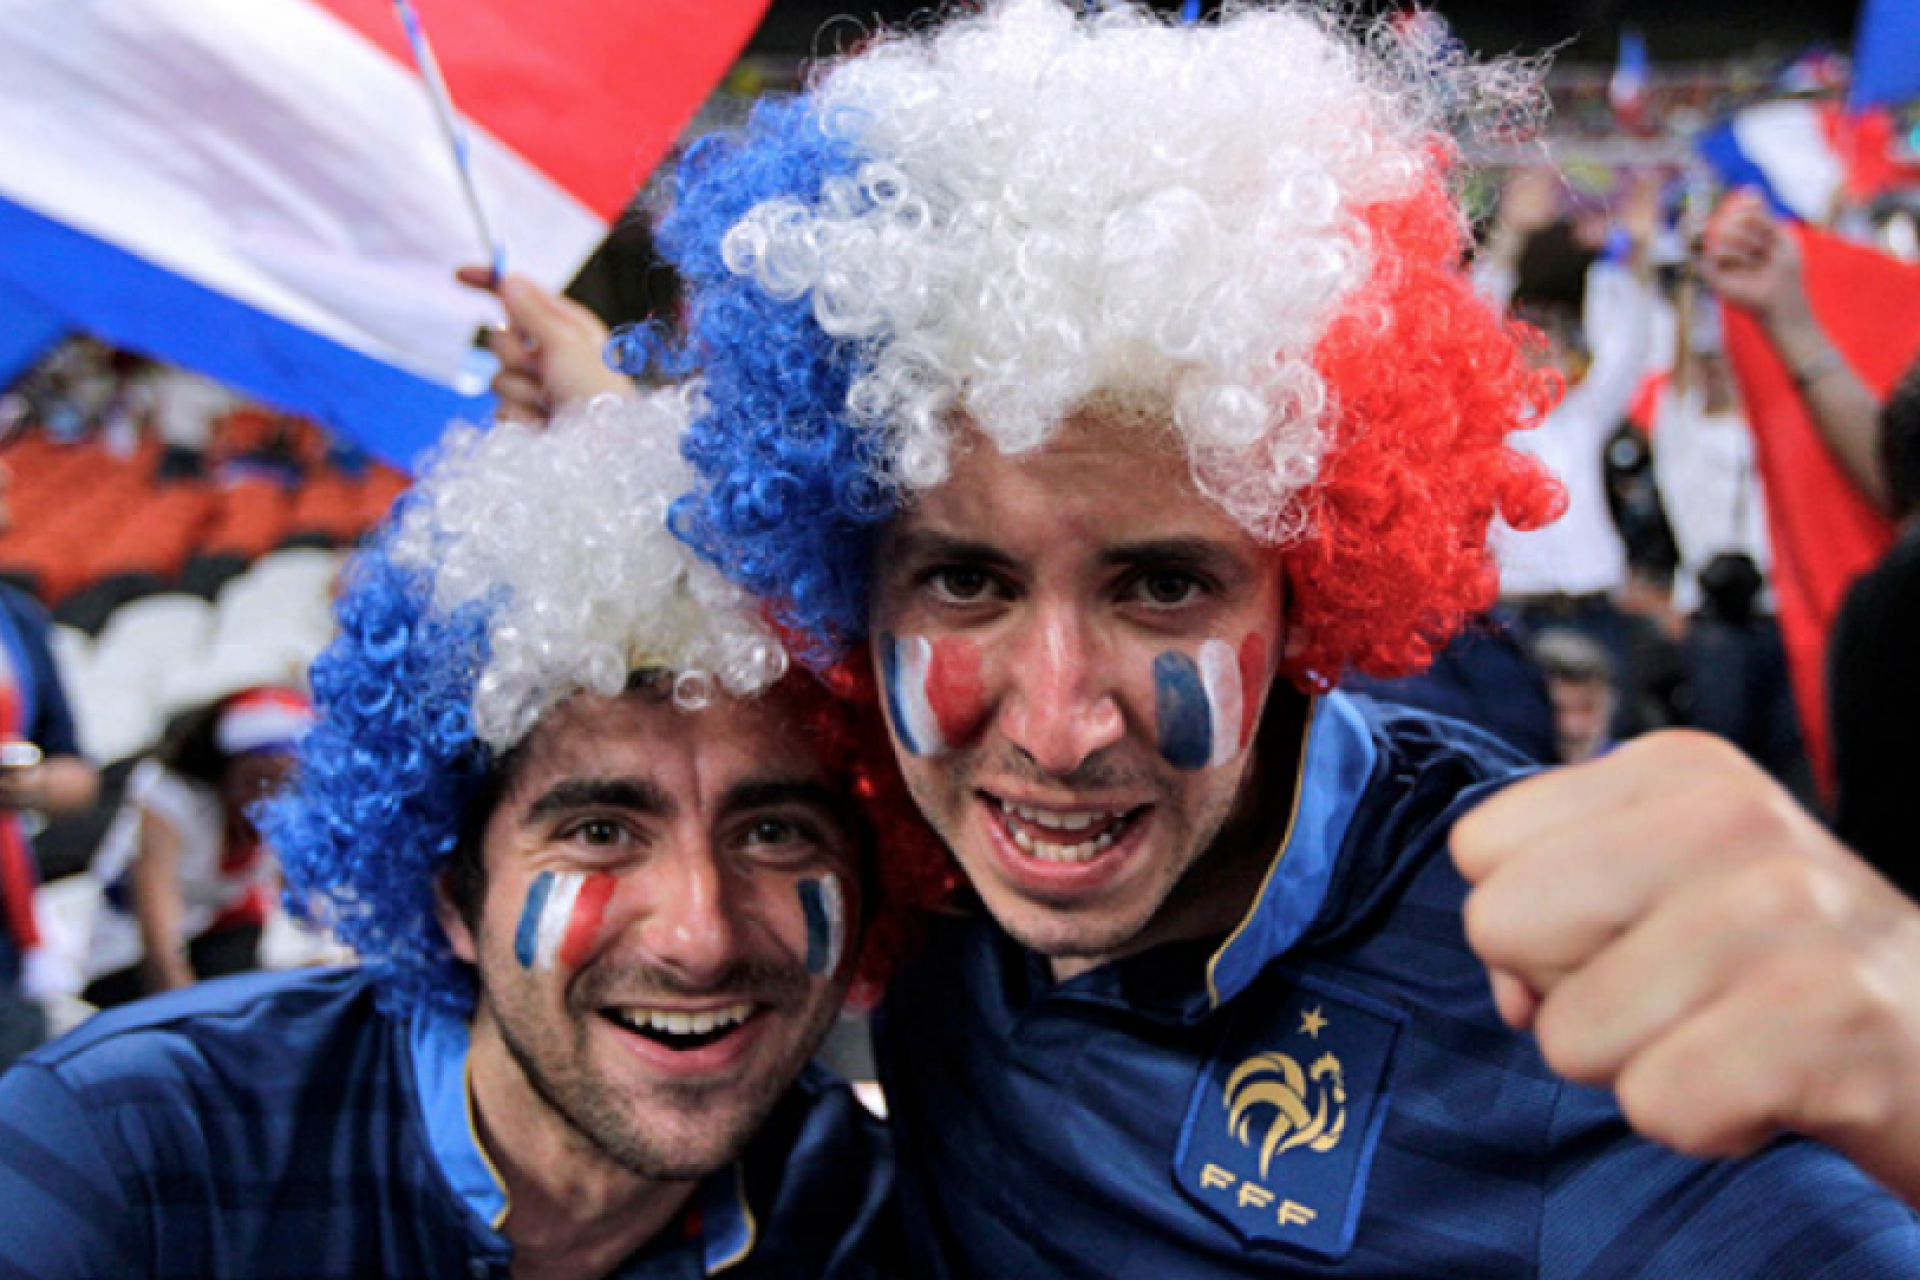 More than 5 thousand French fans will arrive in the capital to support the national team